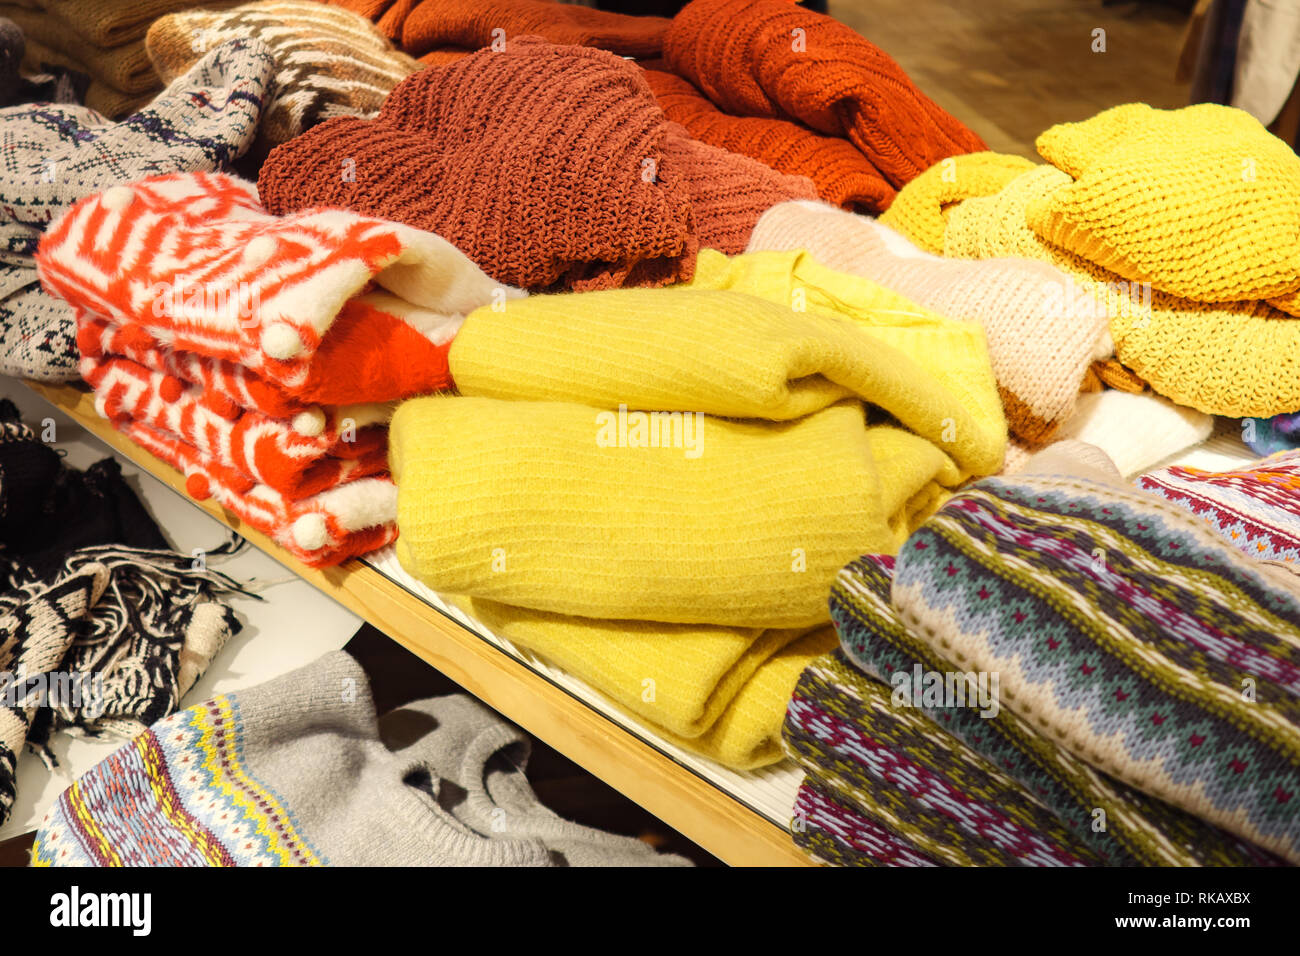 Piles of colorful sweaters on shelf - Stock Image